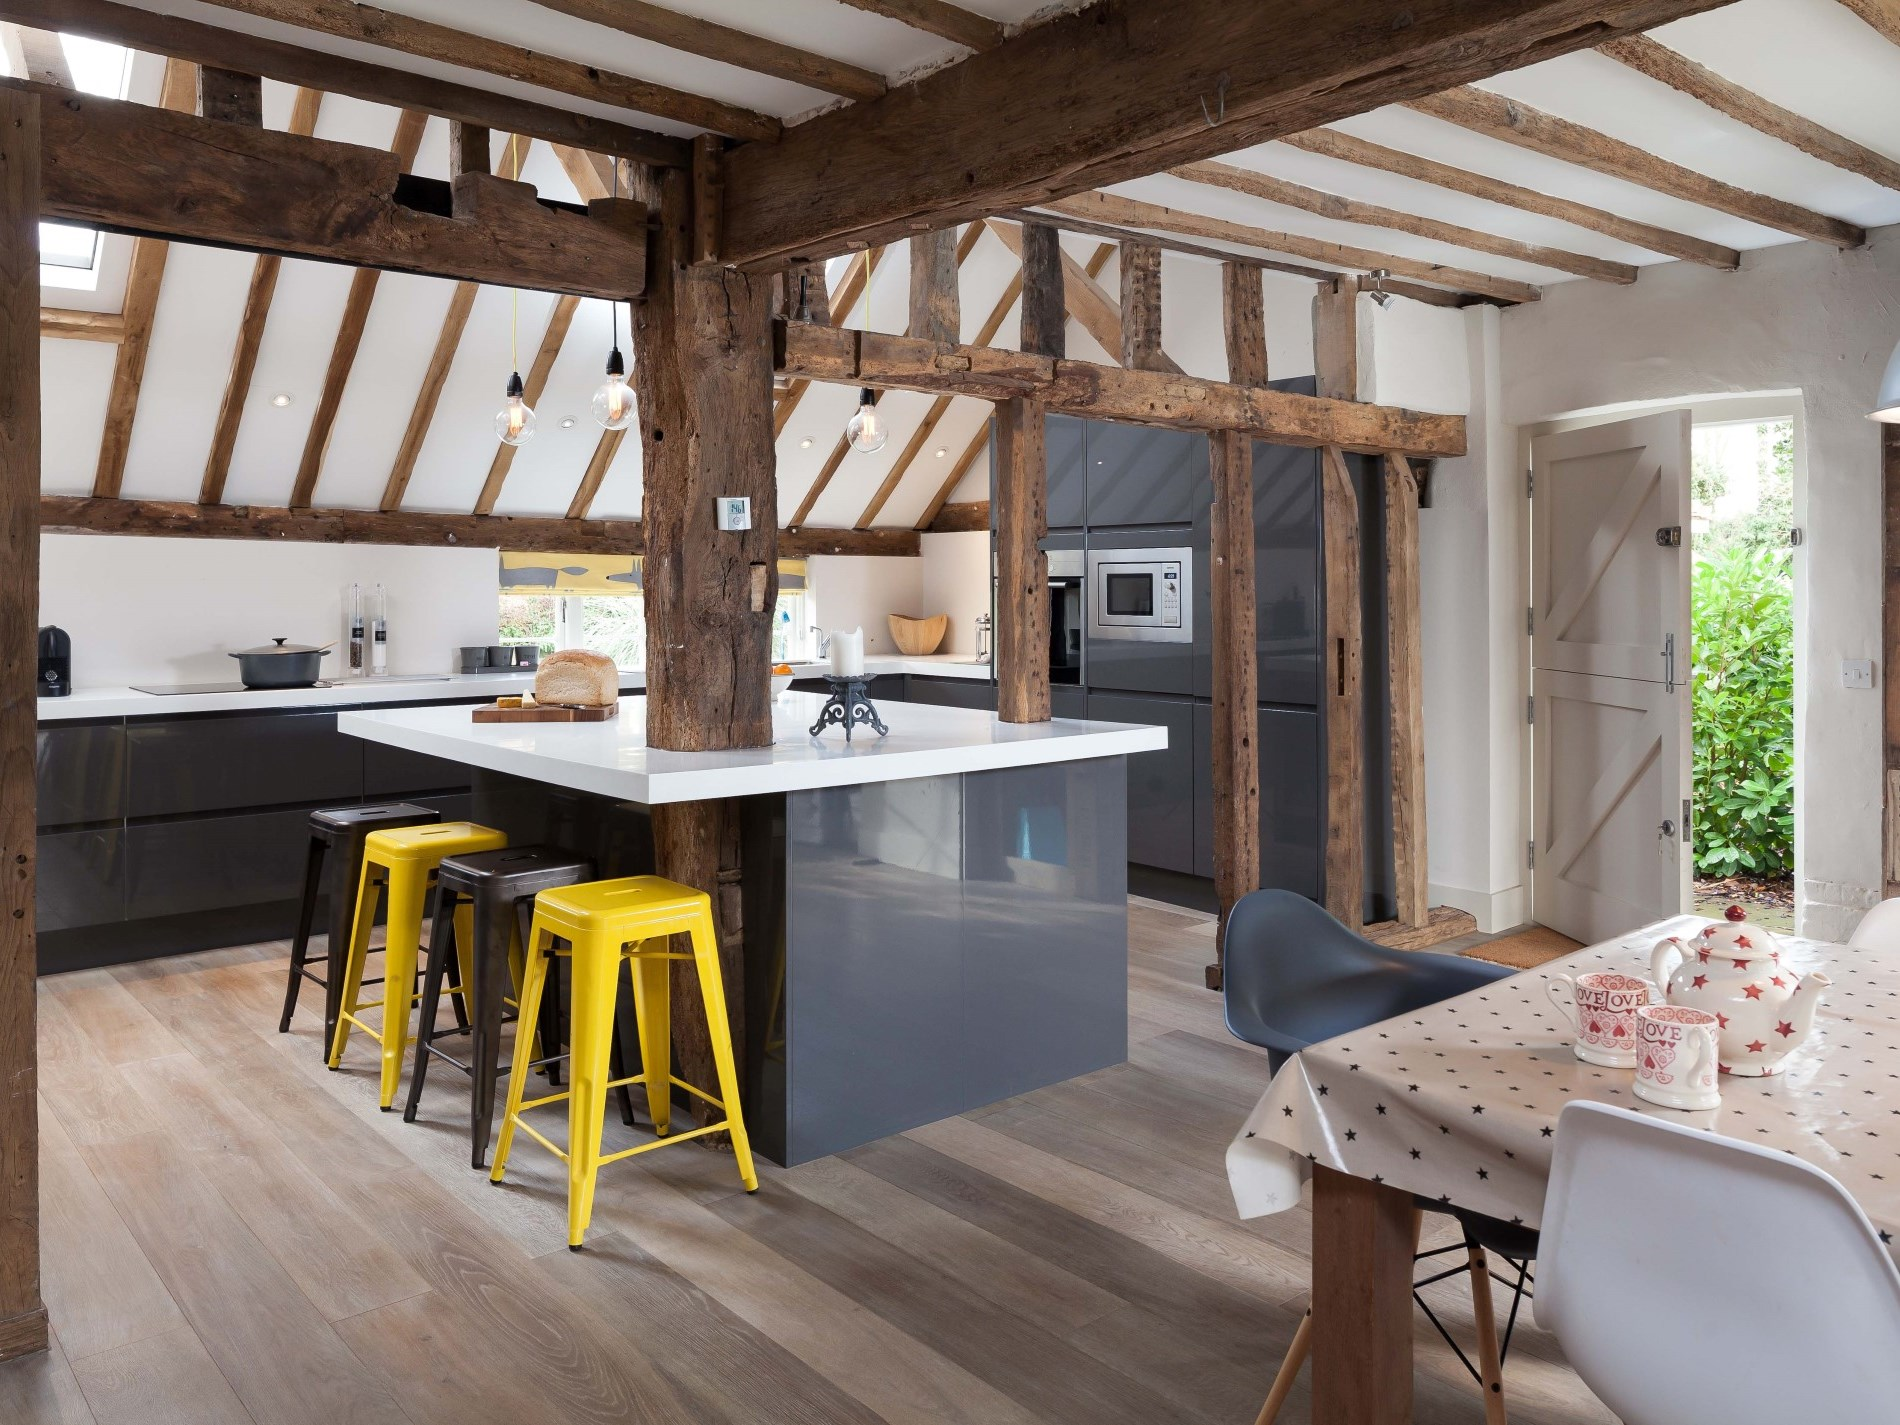 Exposed beams throughout